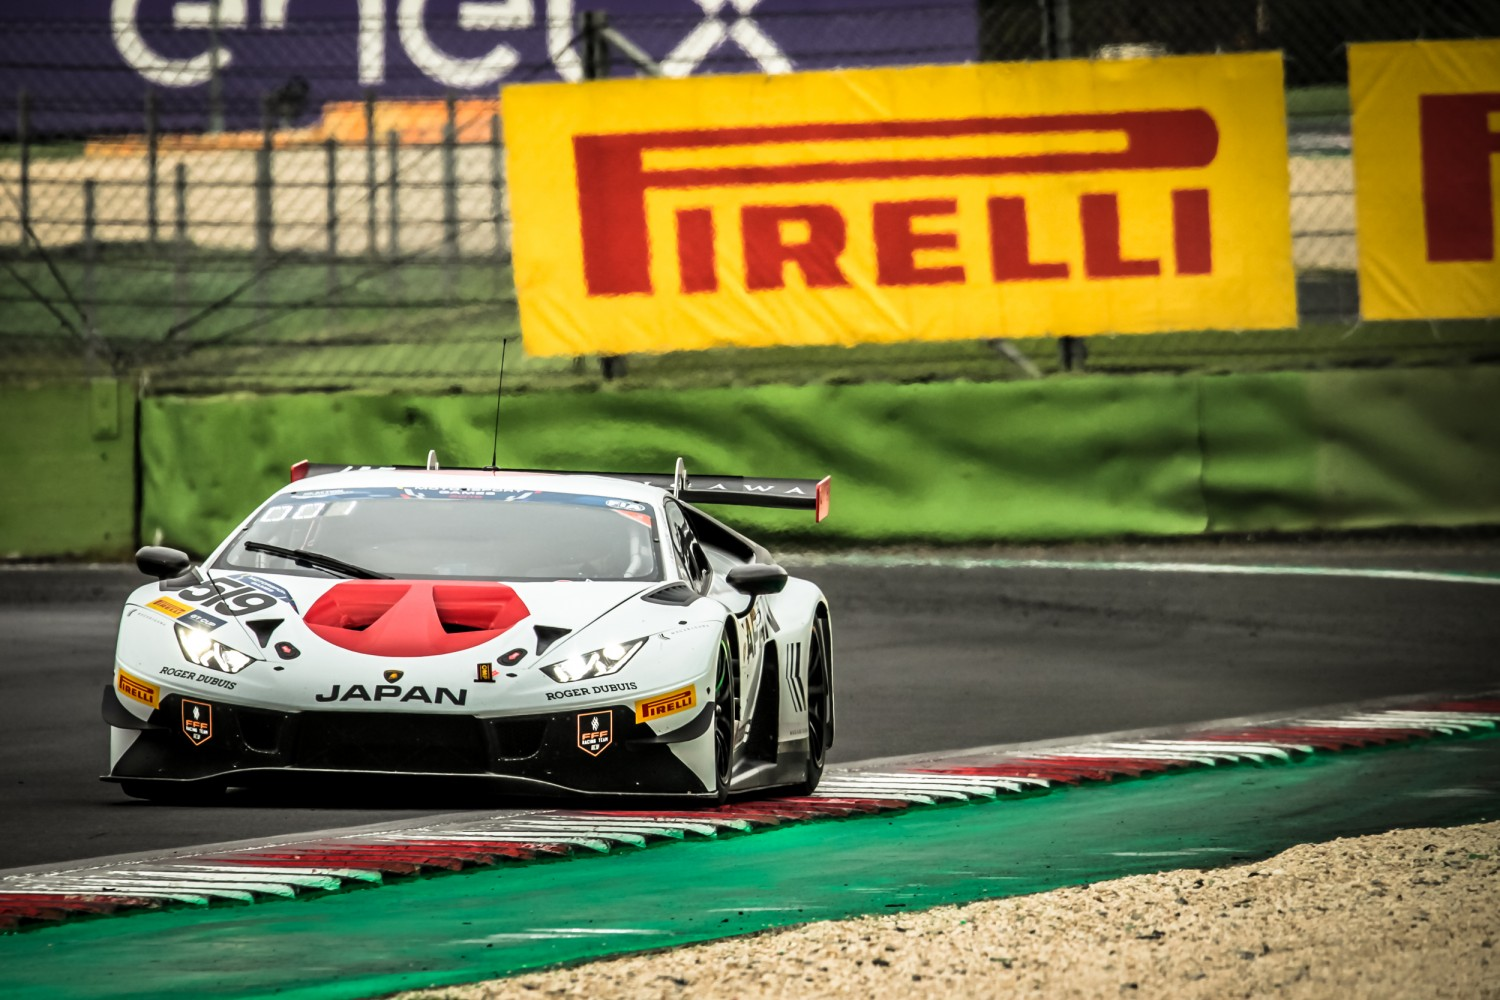 Japan takes race 2 victory at Vallelunga, Poland on provisional pole for medal showdown